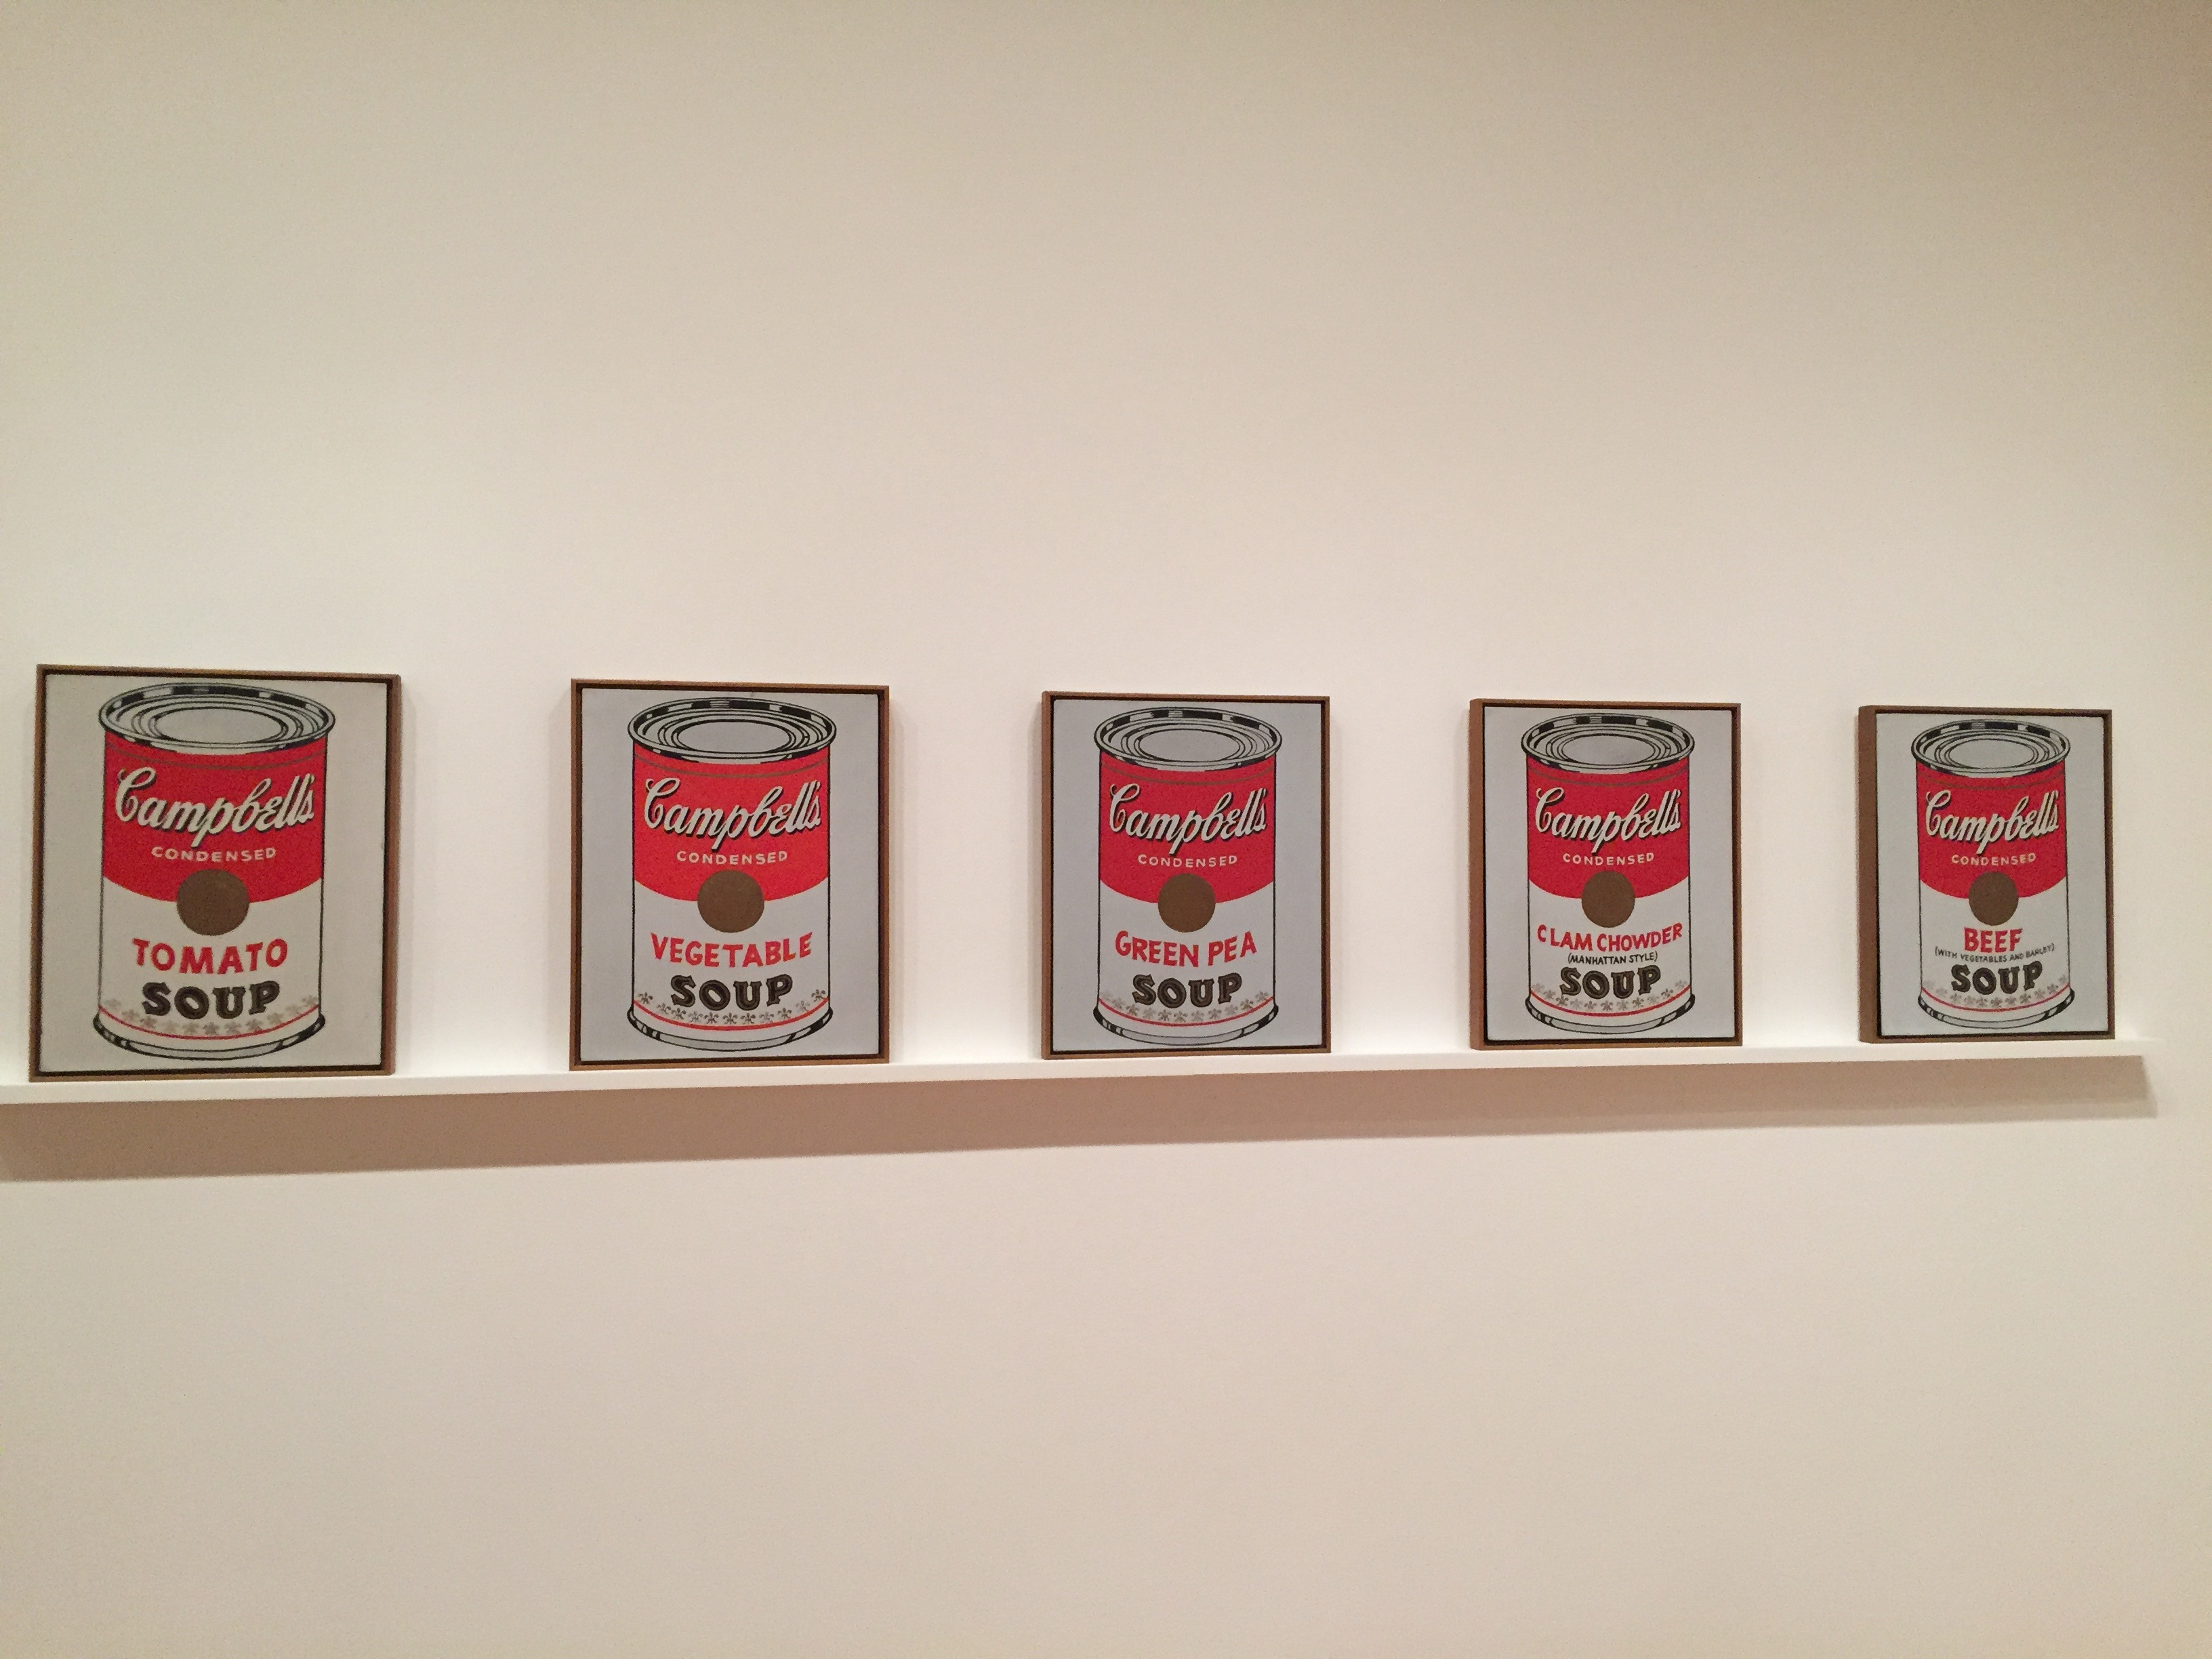 Campbell's Soup Cans - Acervo MoMa